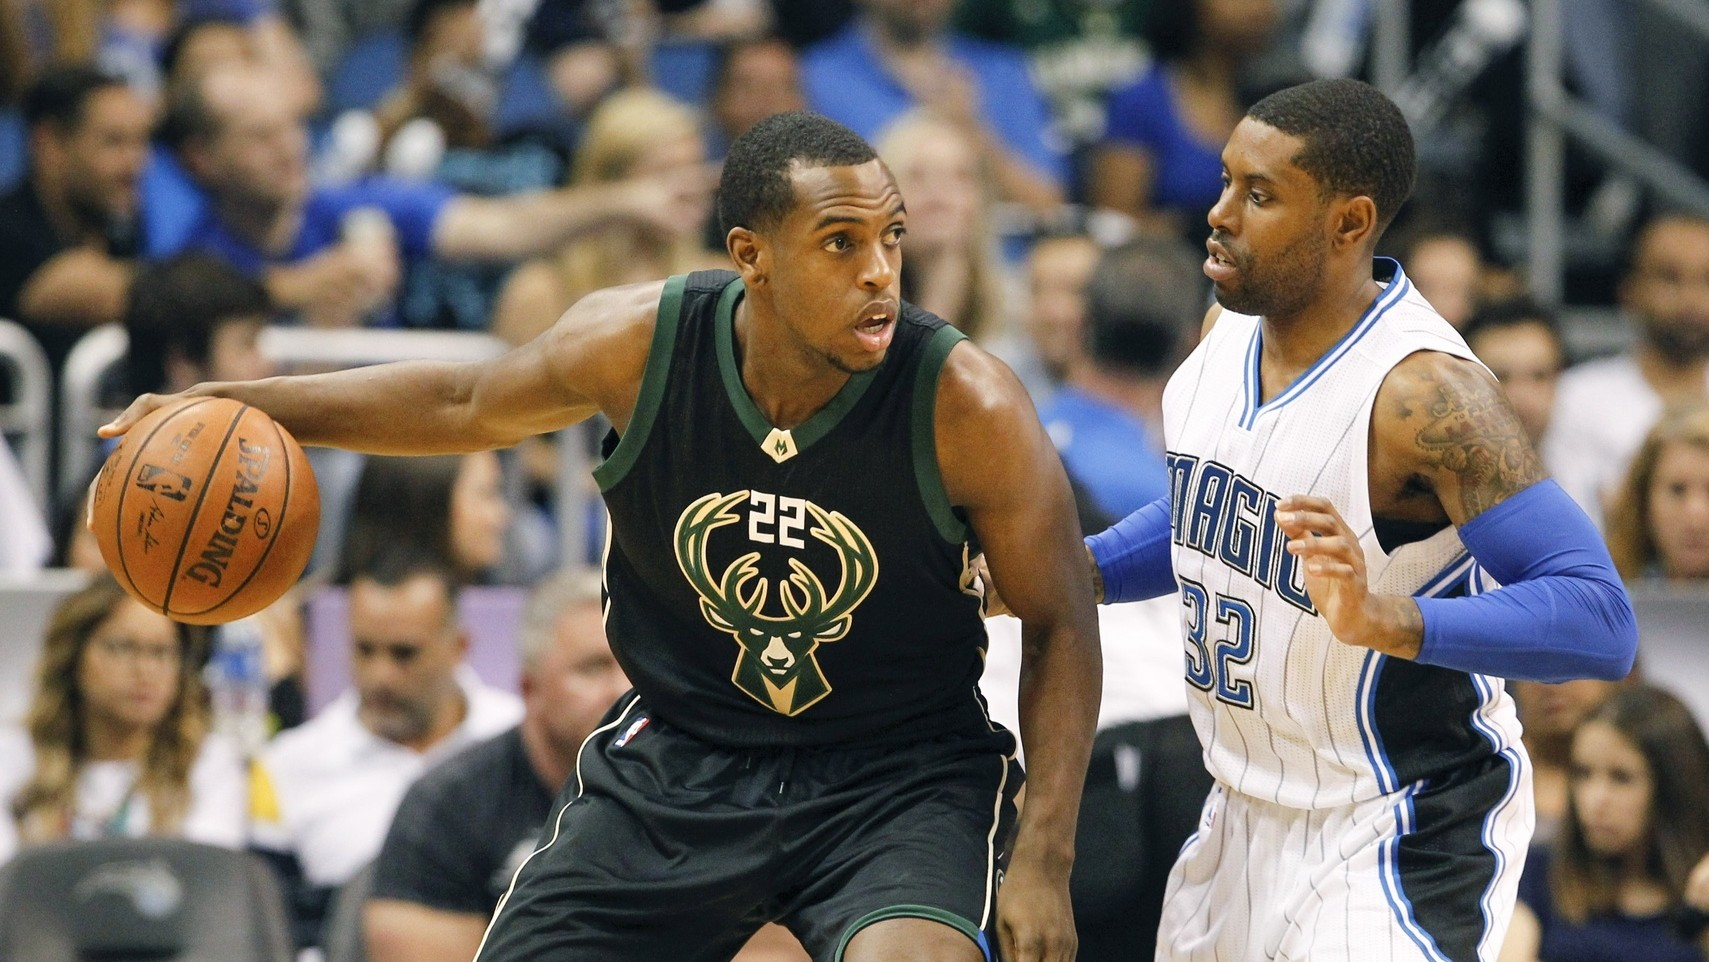 Khris Middleton Has the Bucks Slowing Down and Heating Up